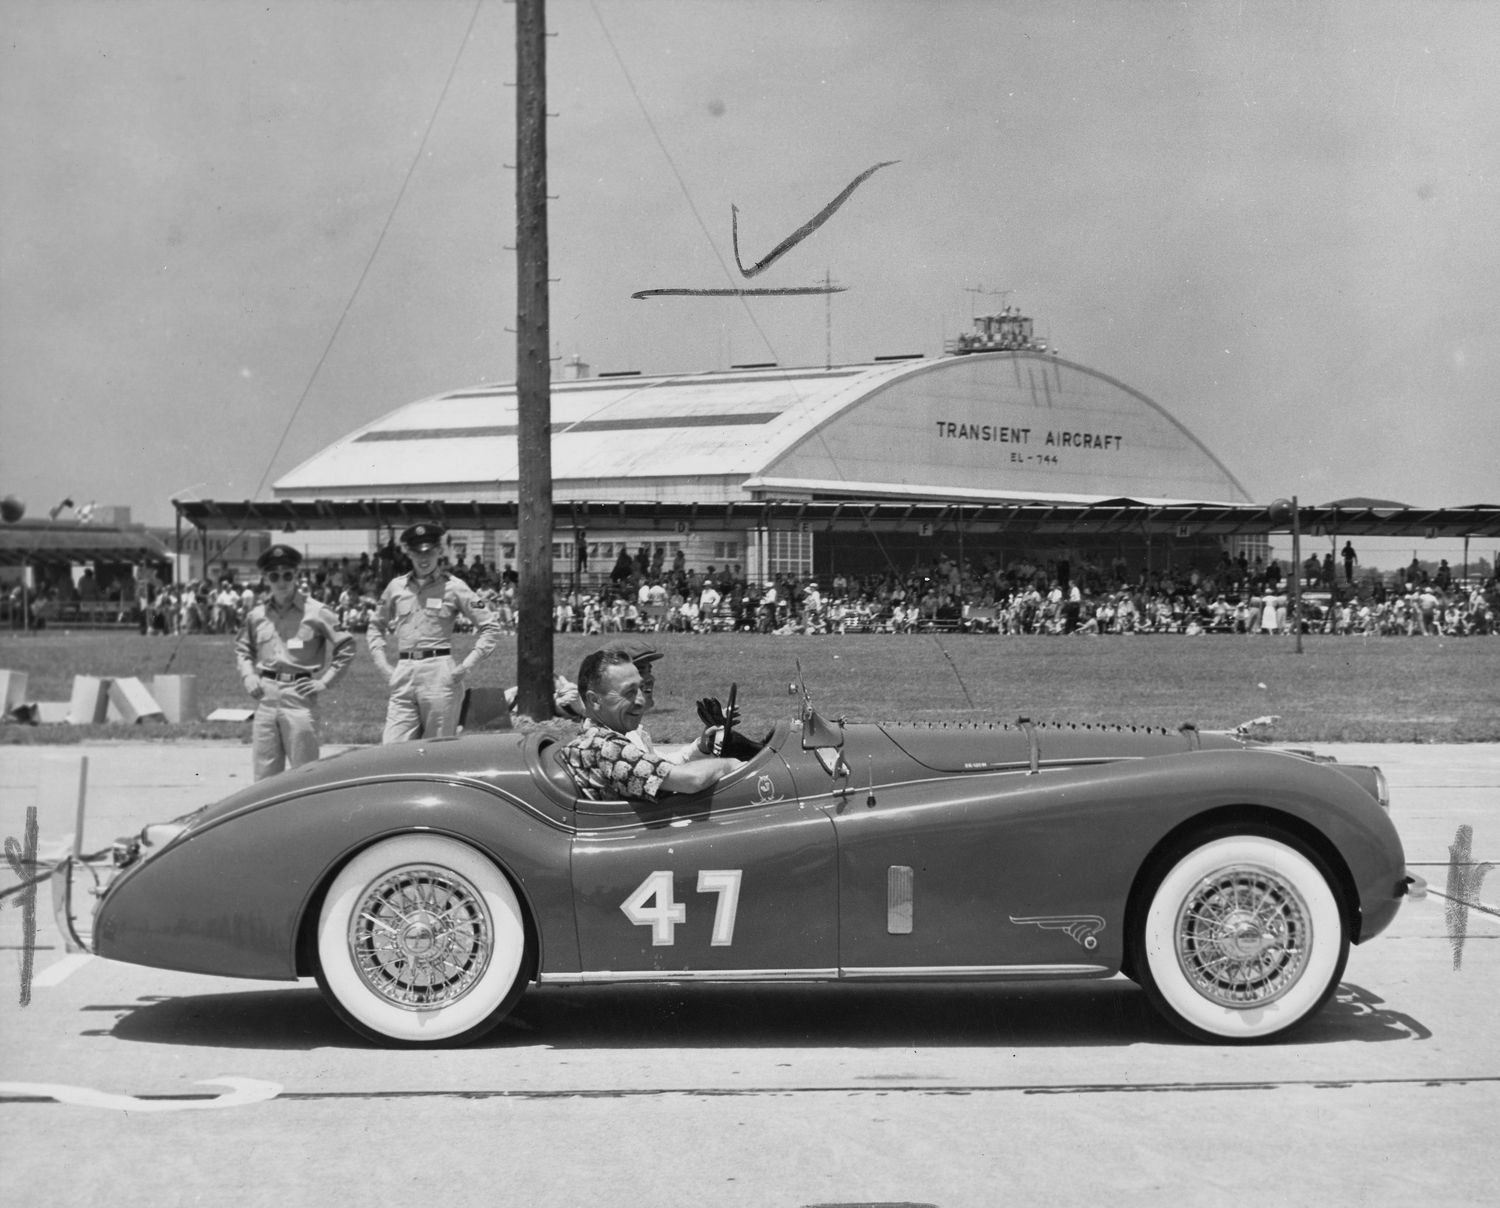 One of the last of the AFB races Lockbourne, 1953